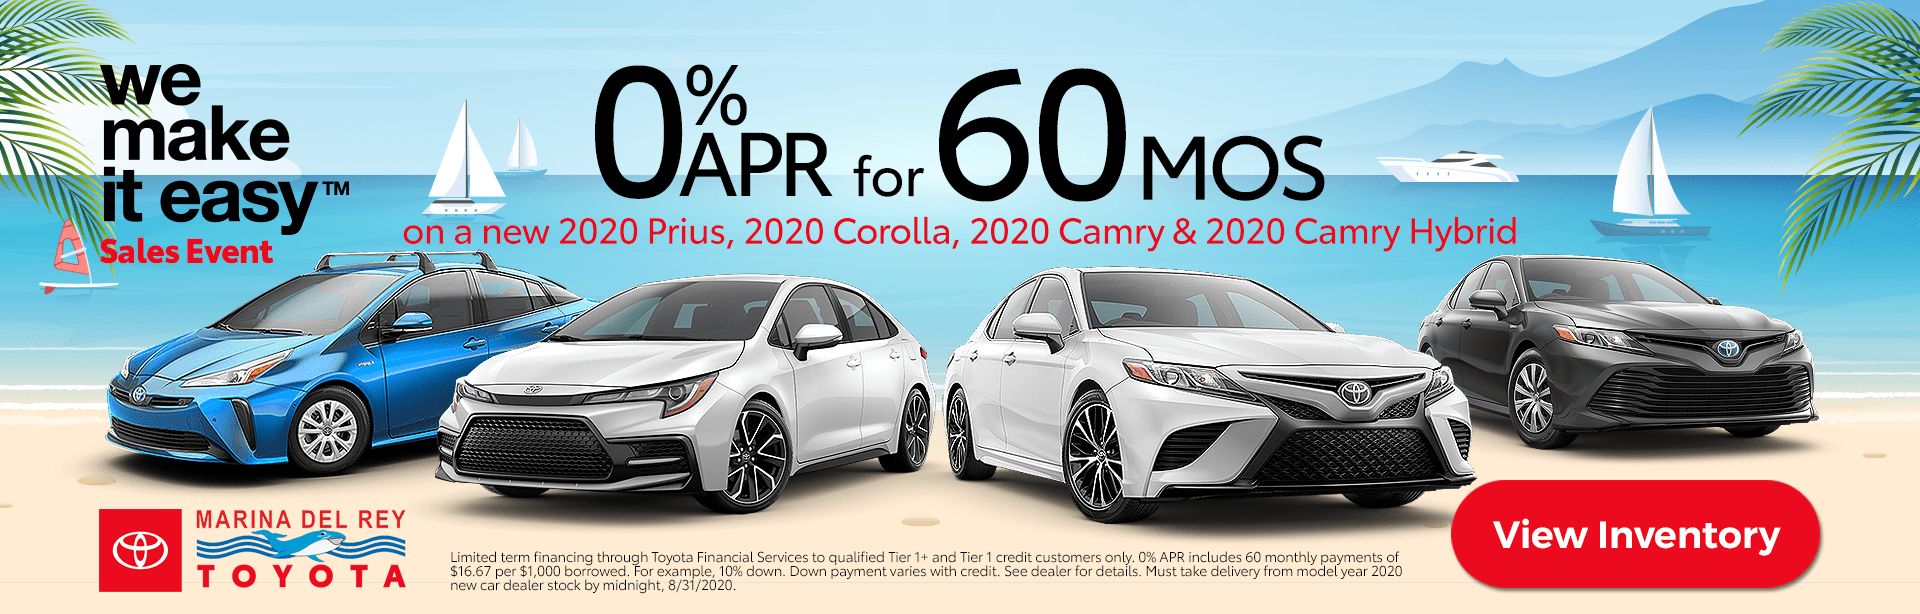 July 2020 Camry and Prius Deals Zero Percent APR